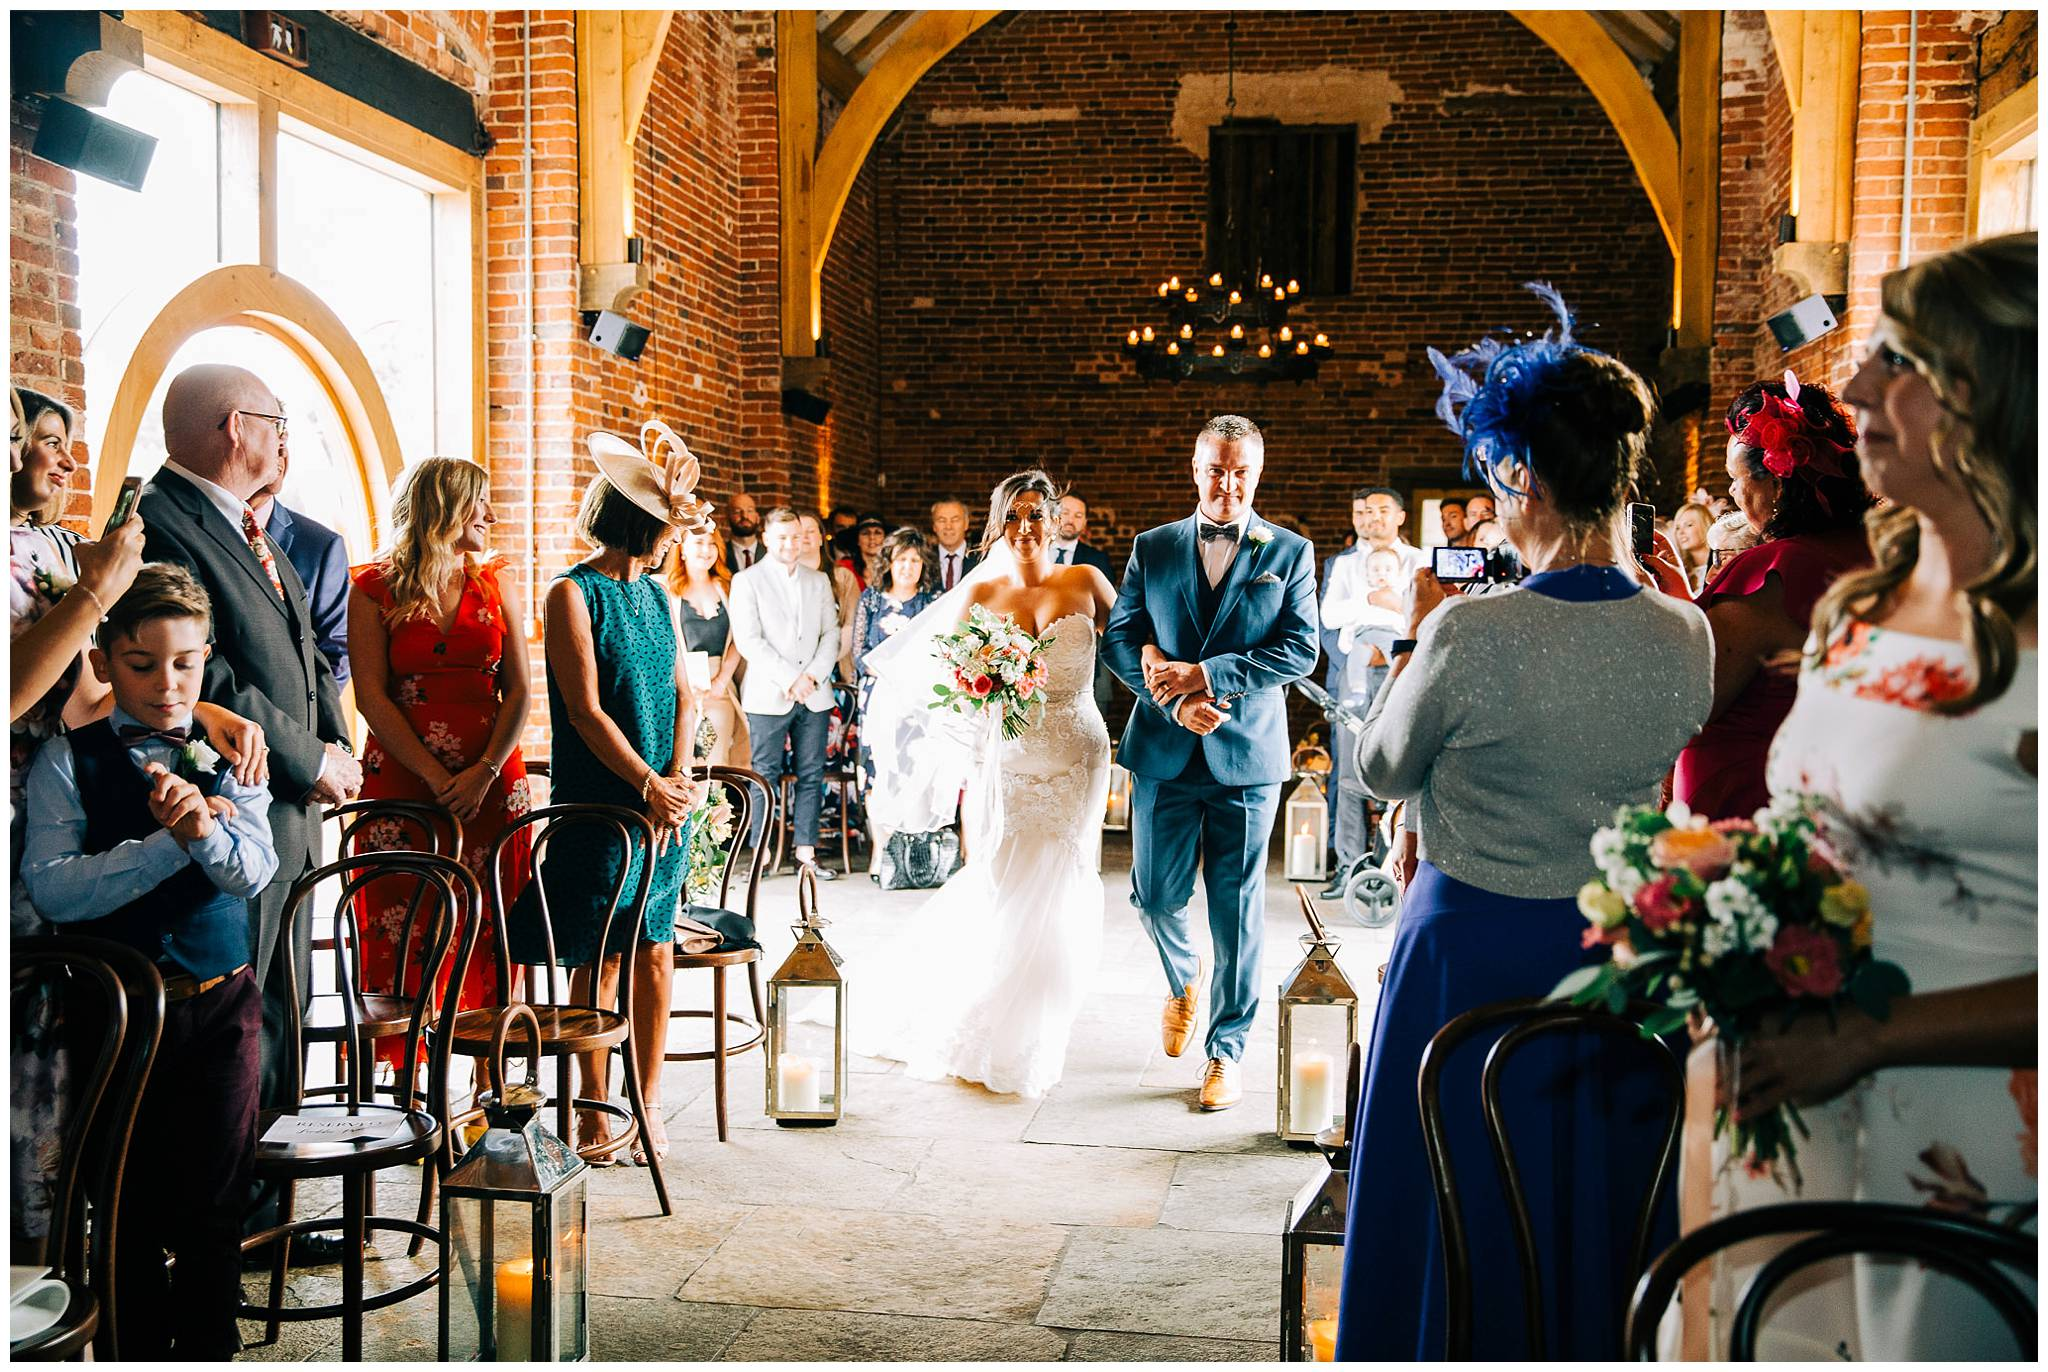 Chic Summer Wedding at Hazel Gap Barn - Nottinghamshire Photographer19.jpg